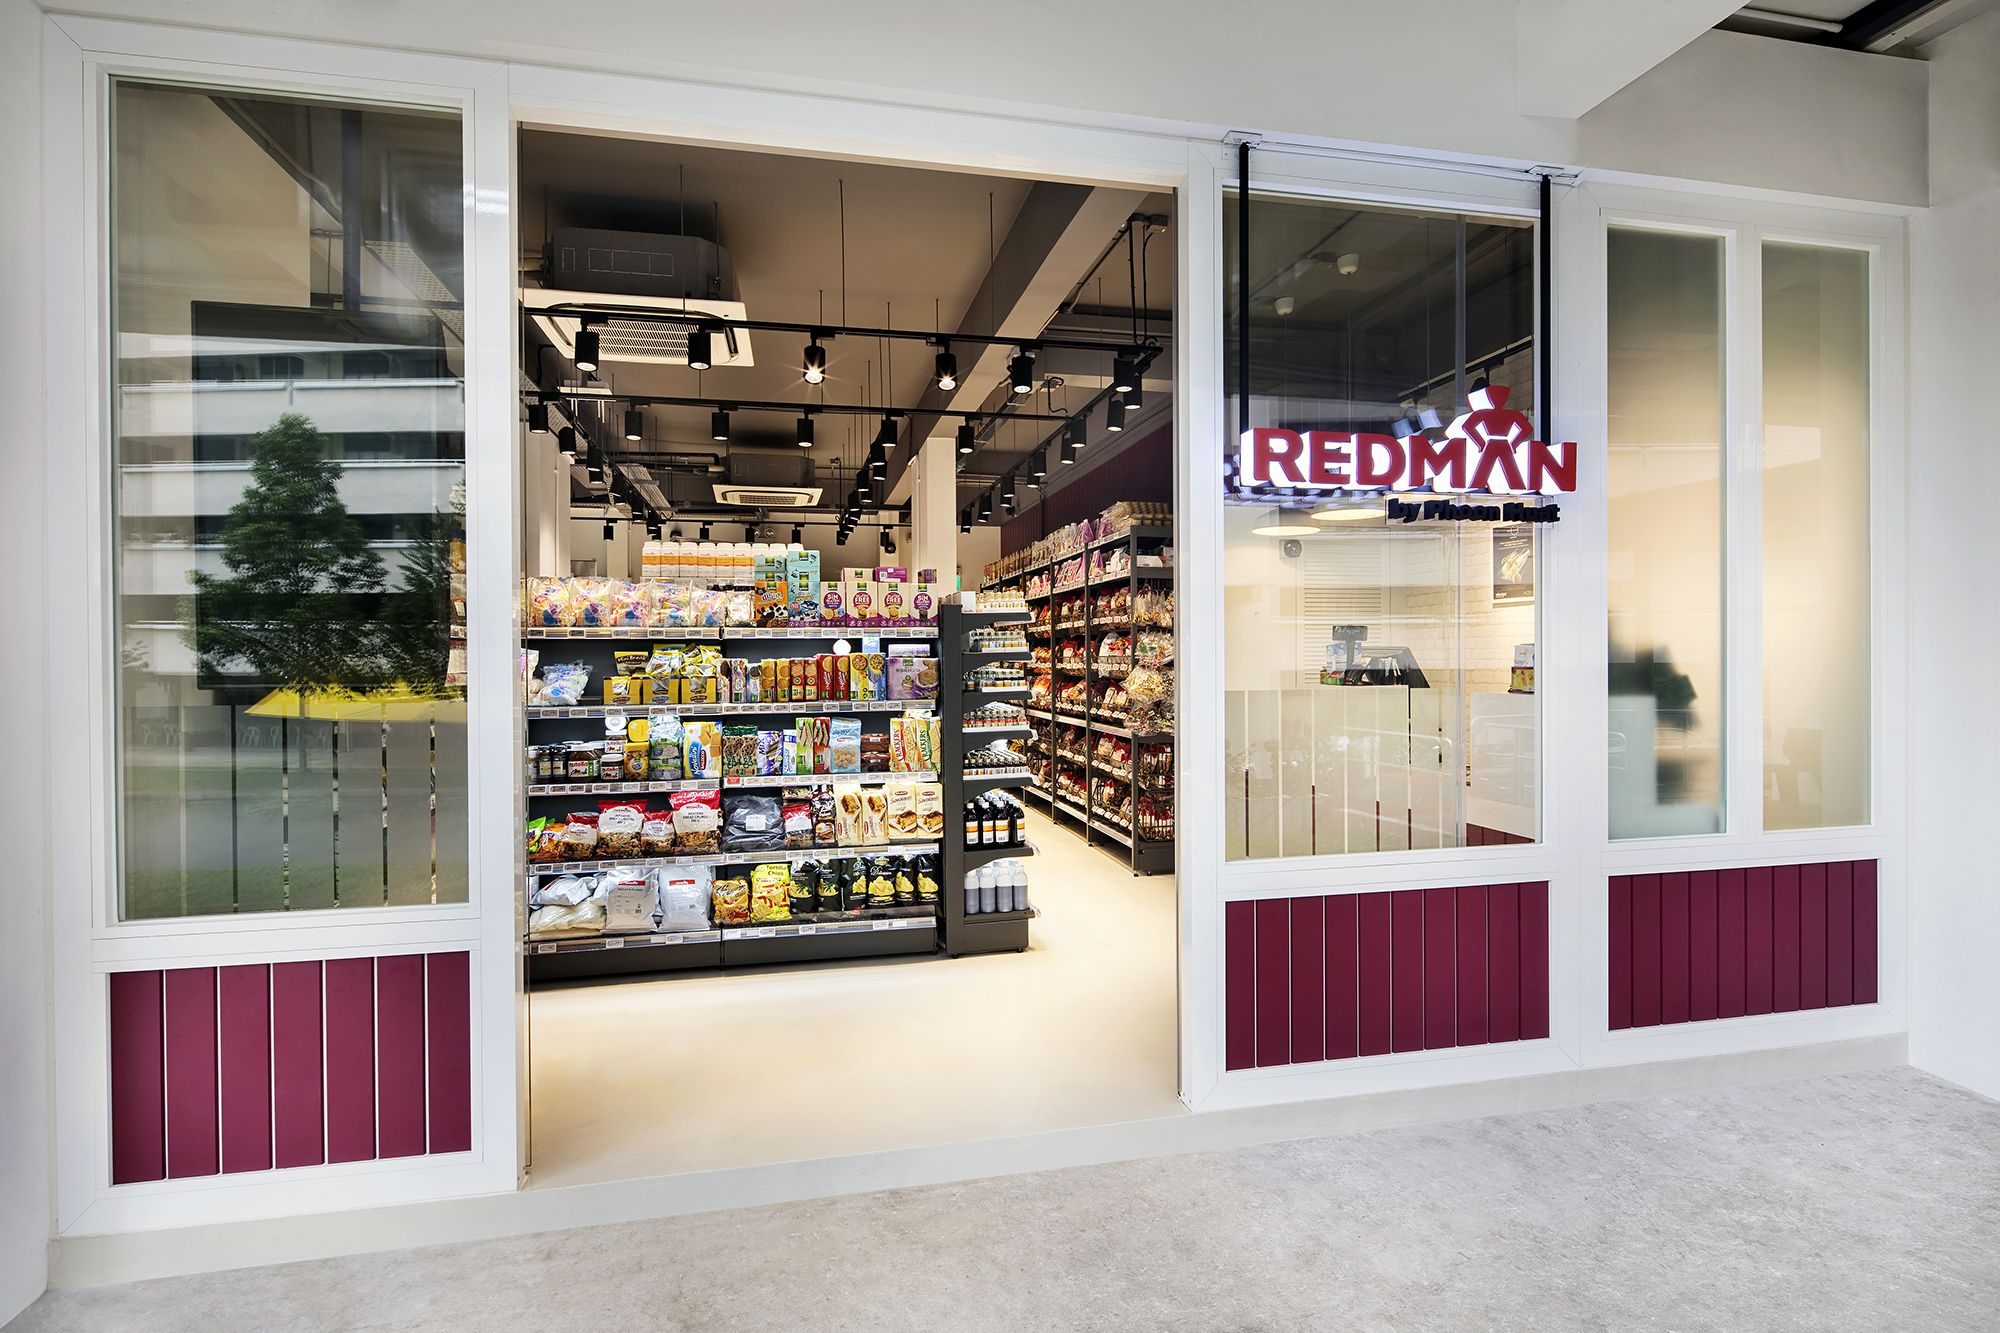 Image Result For Redman Baking Store